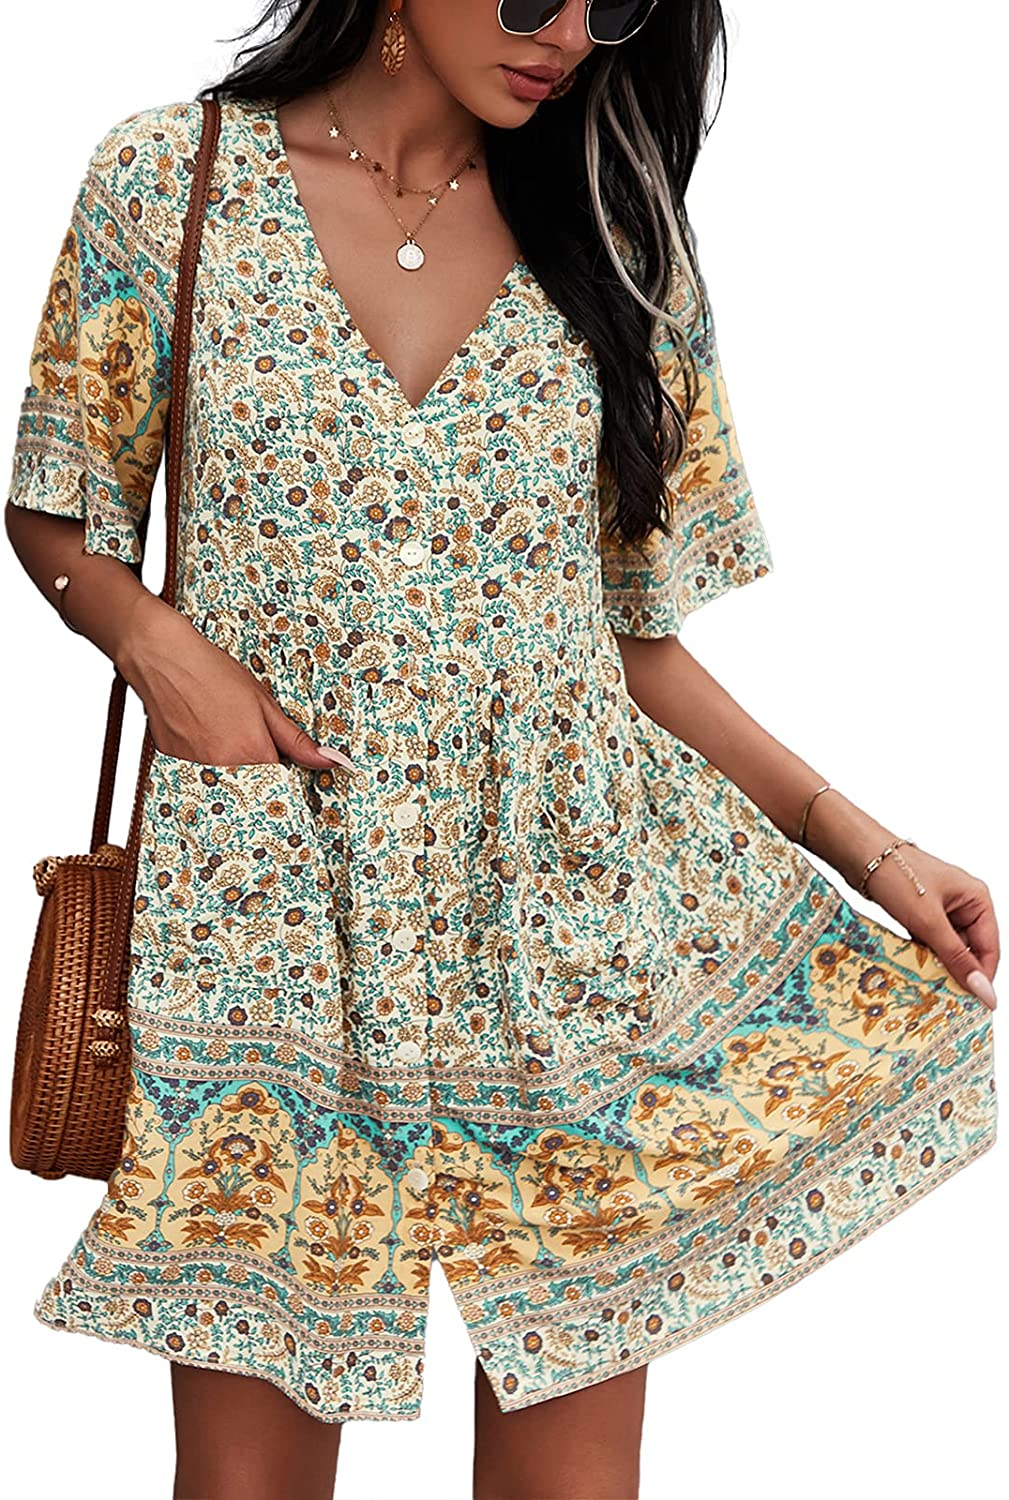 TEMOFON Women's Dress Bohemian Summer V Neck Short Sleeve Floral Printed Button Down Casual Mini Dresses with Pockets